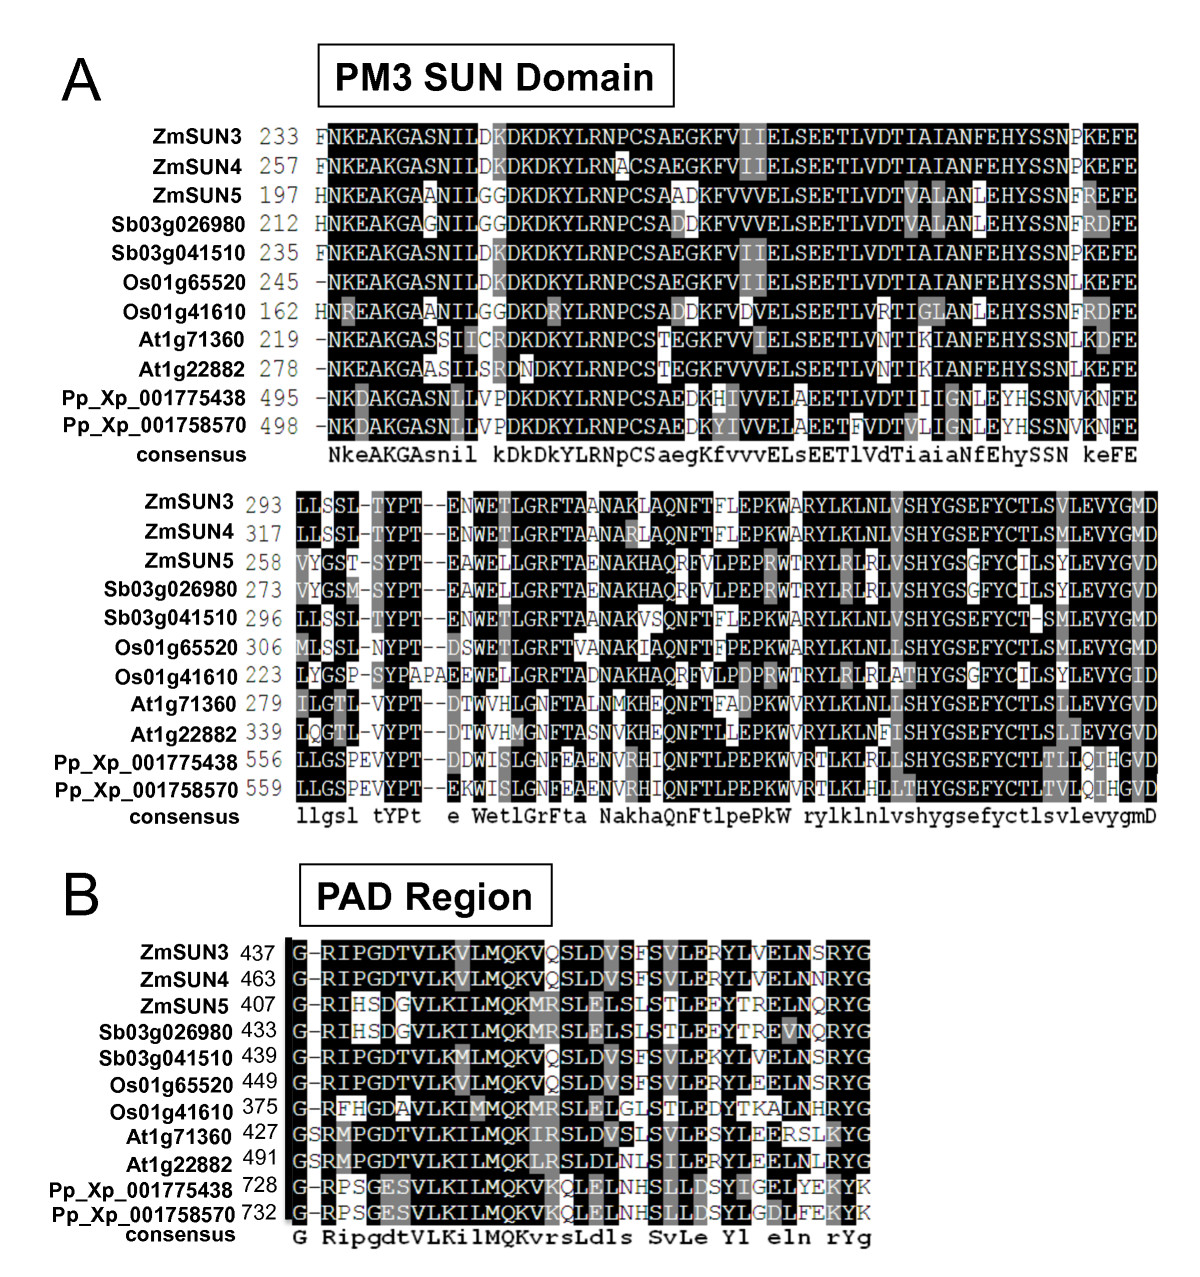 https://static-content.springer.com/image/art%3A10.1186%2F1471-2229-10-269/MediaObjects/12870_2010_Article_763_Fig4_HTML.jpg